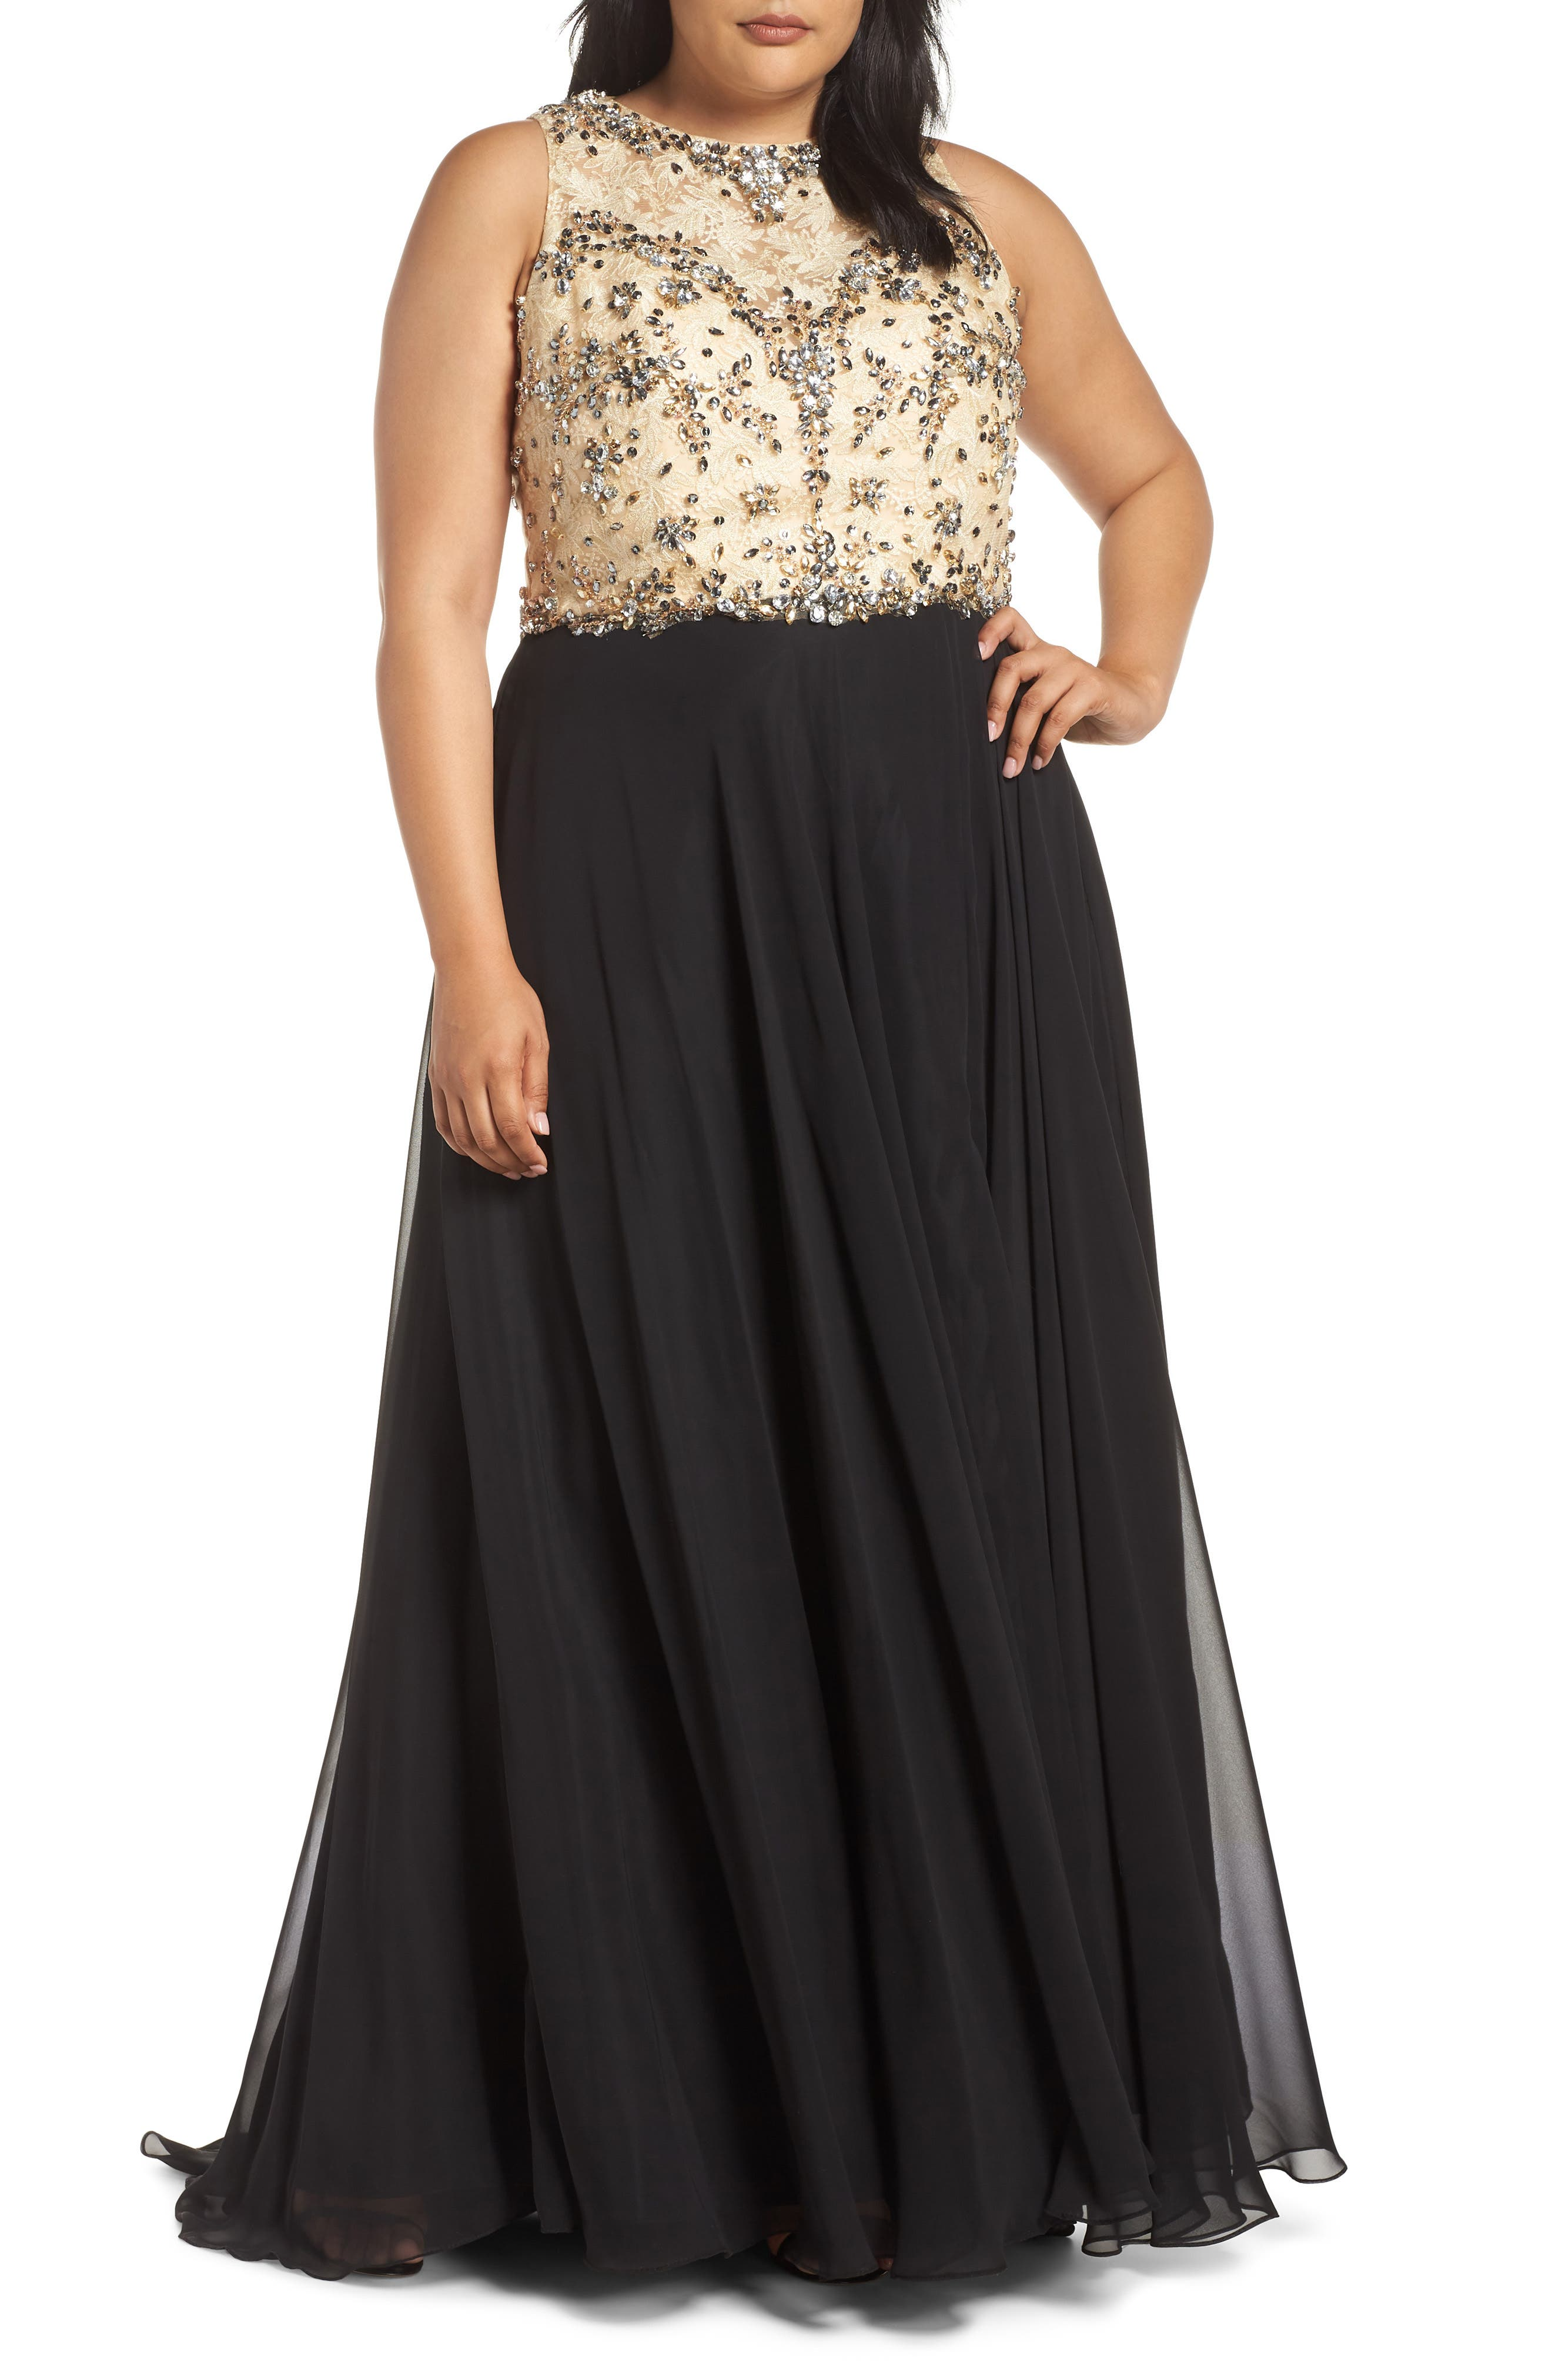 Plus Size MAC Duggal Beaded Illusion Neck Ballgown